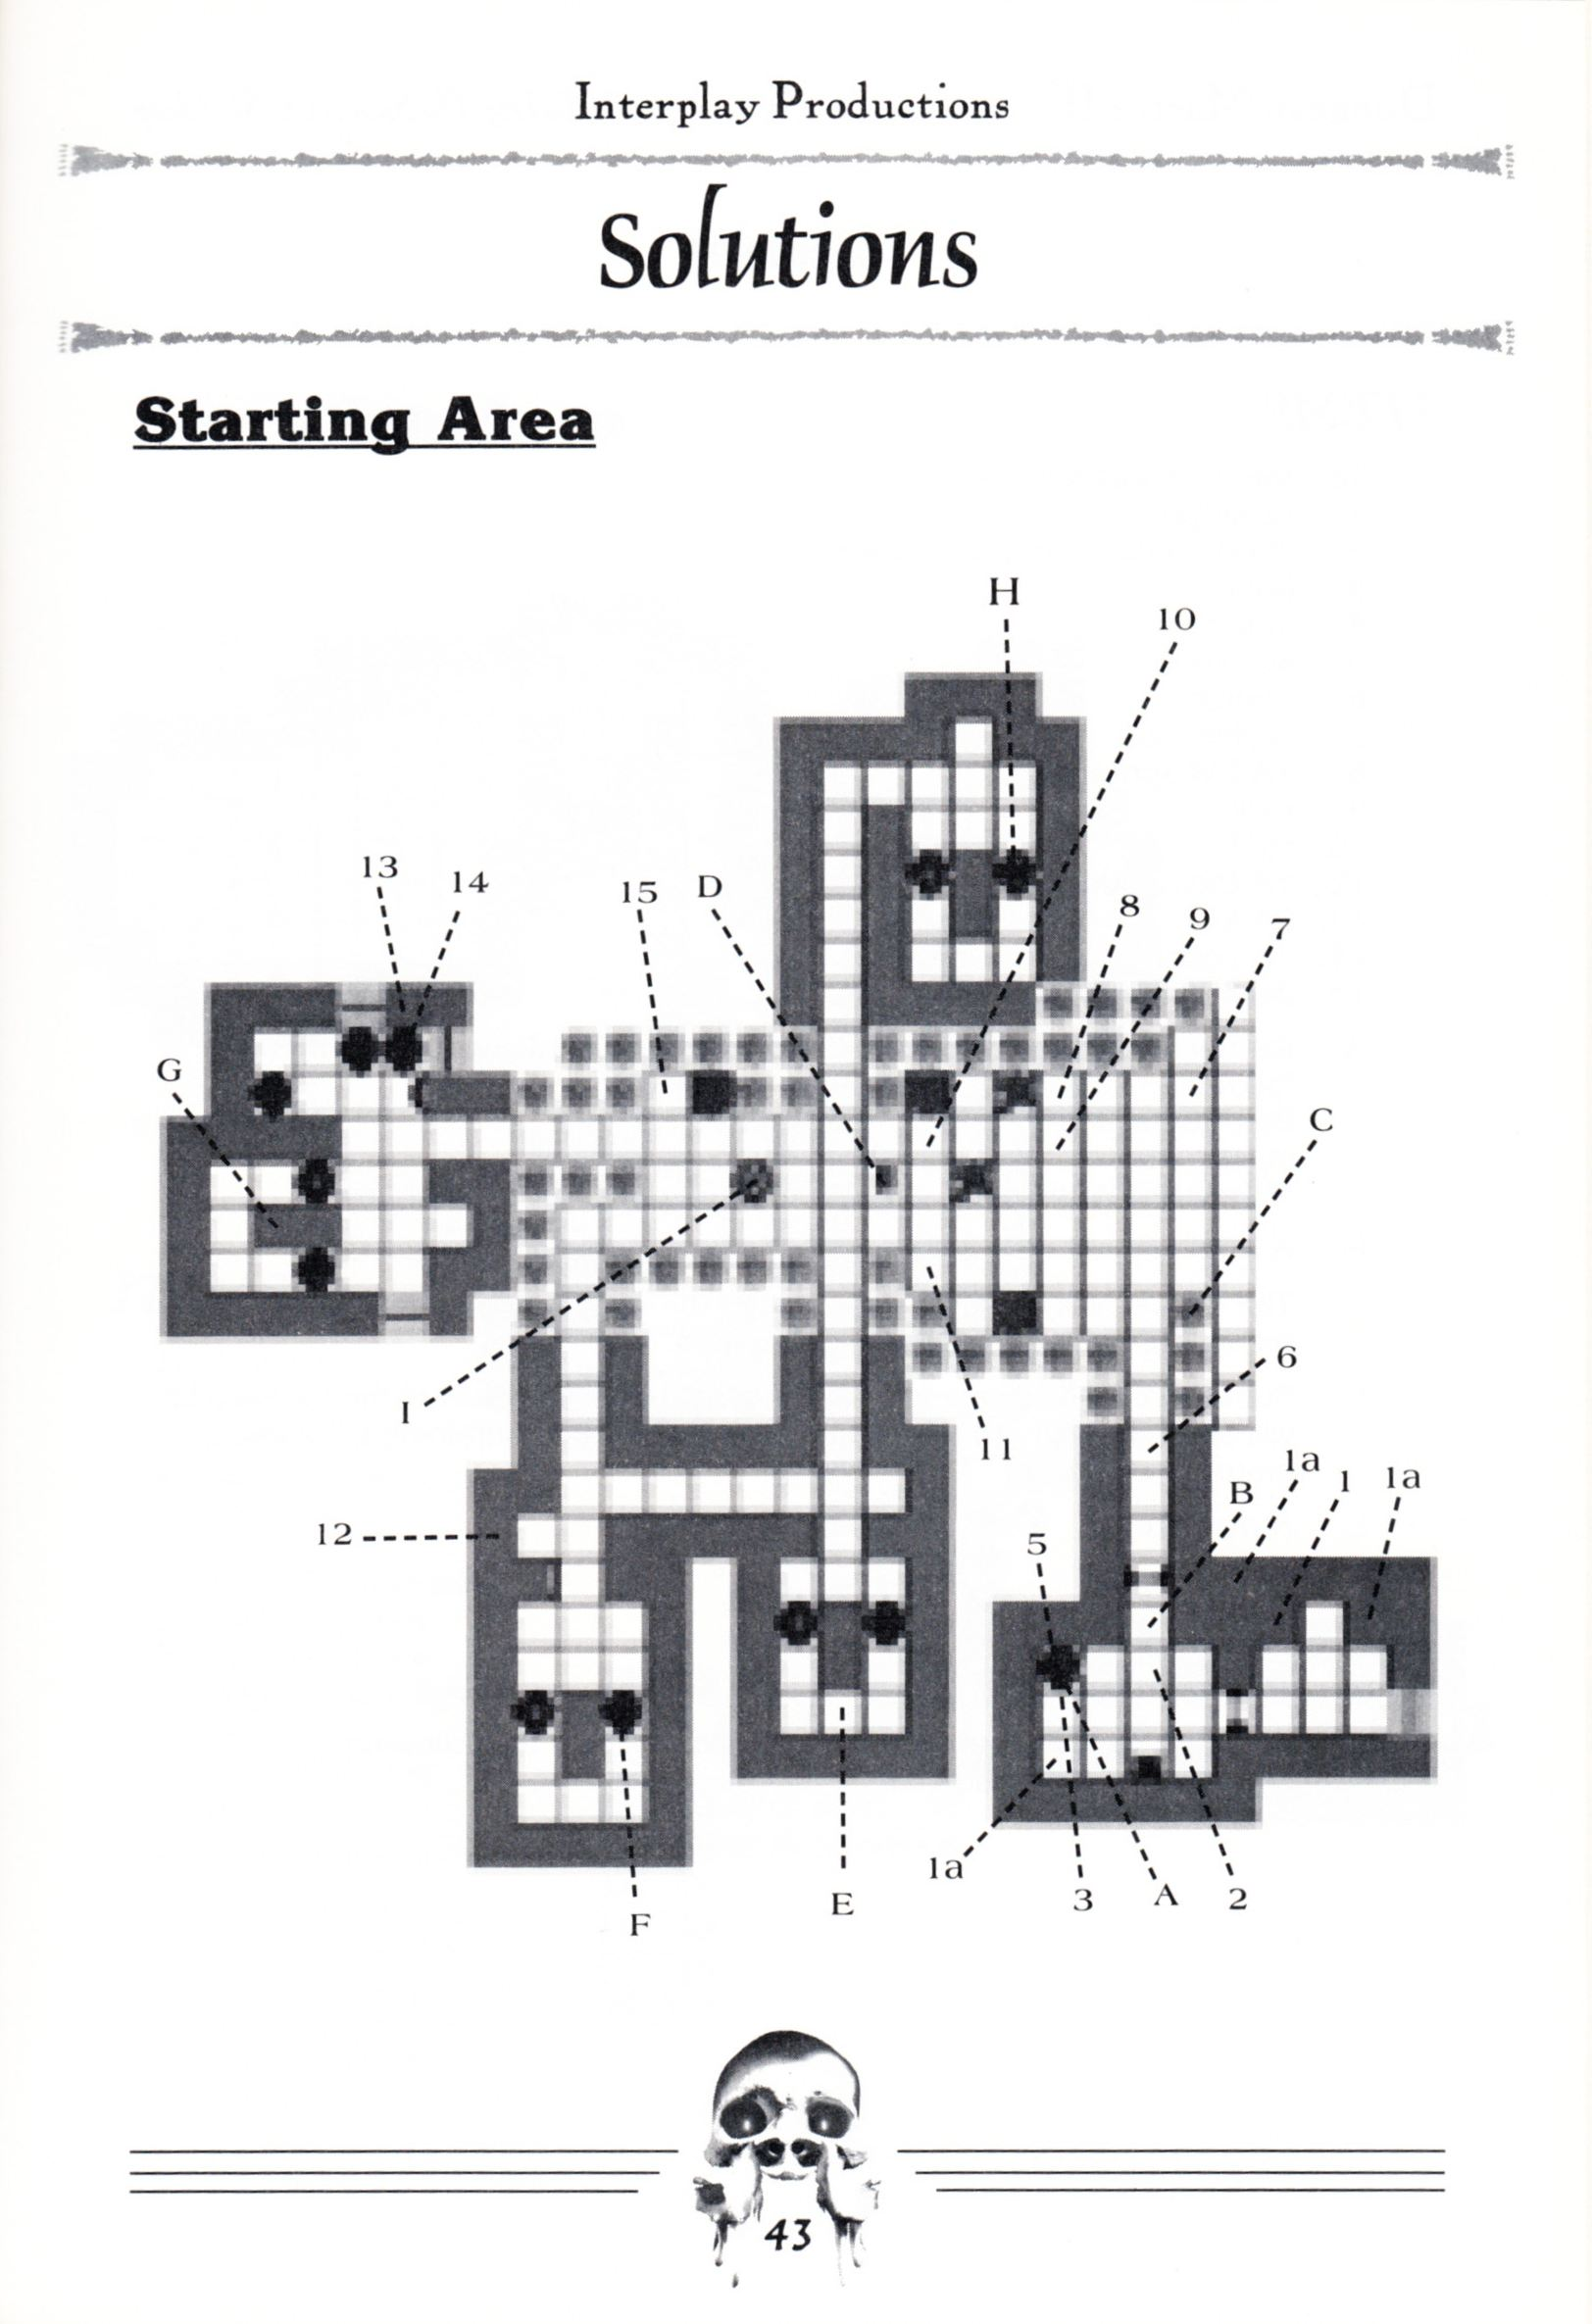 Hint Book - Dungeon Master II Clue Book - US - Page 045 - Scan